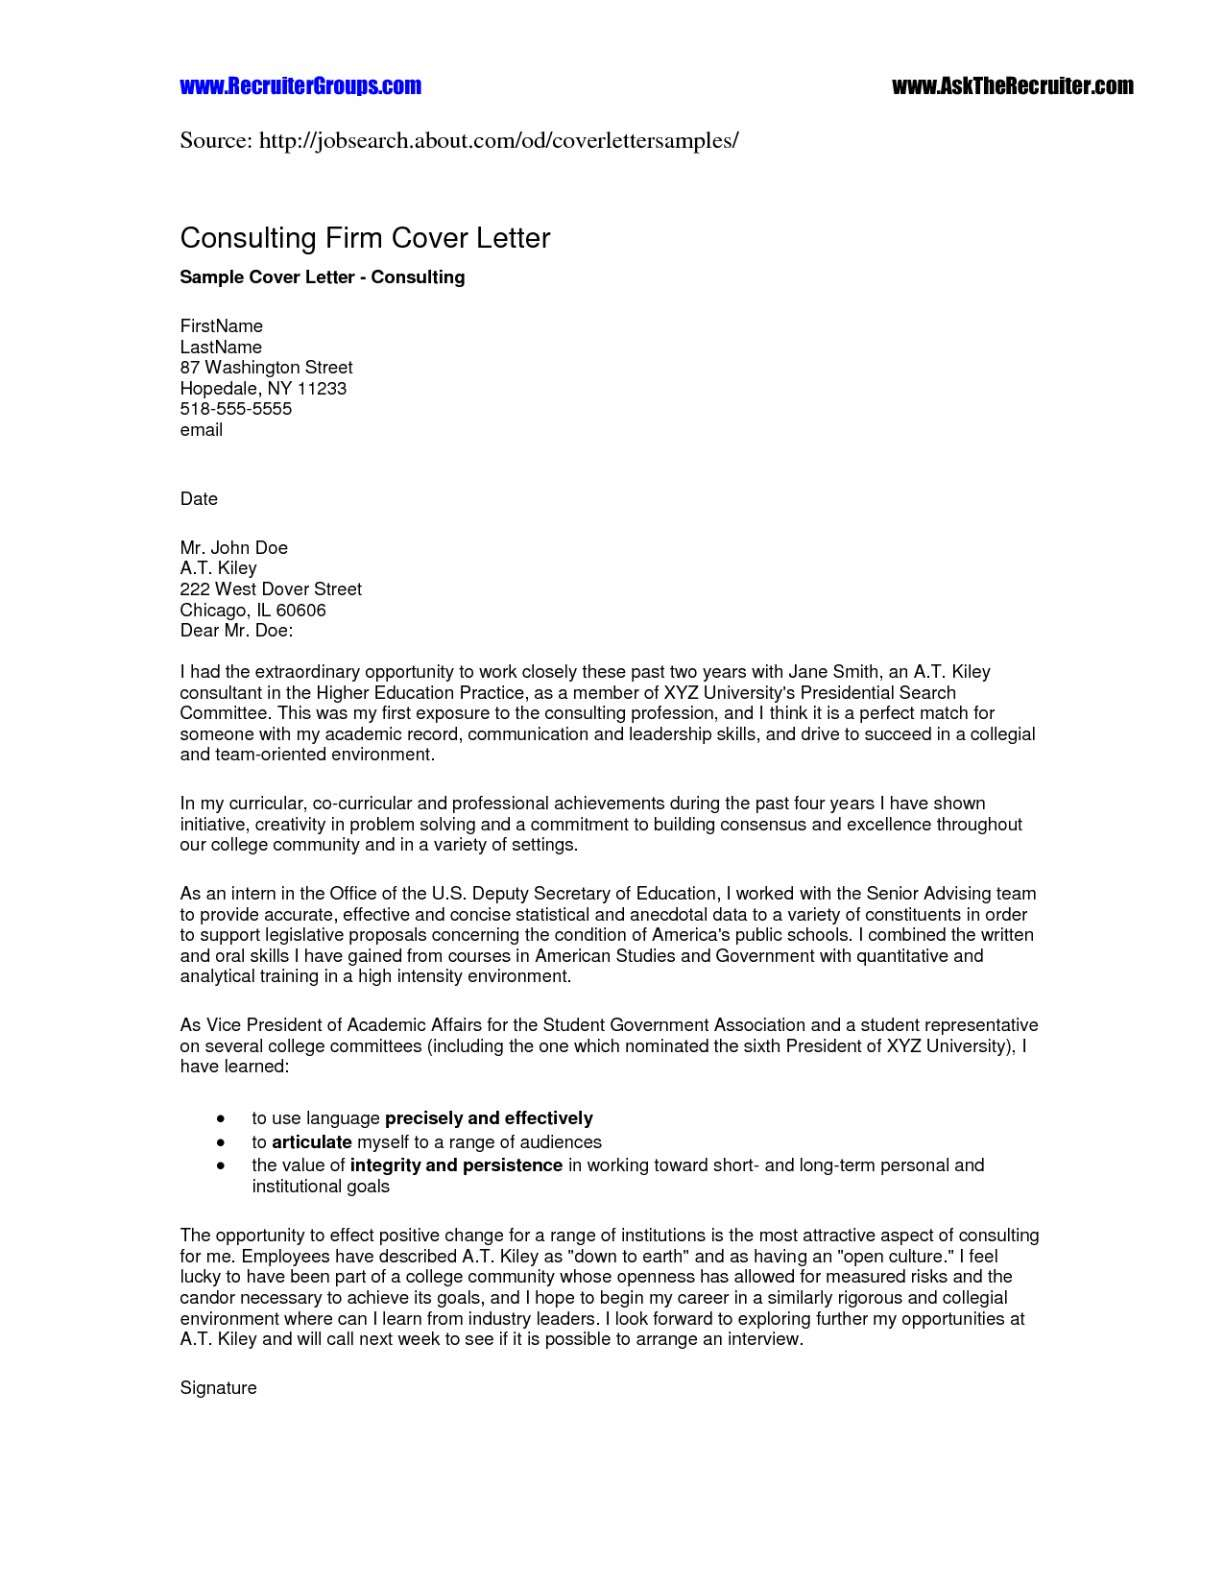 Letter to Santa Template Free - Inspirational Letter Template From Santa